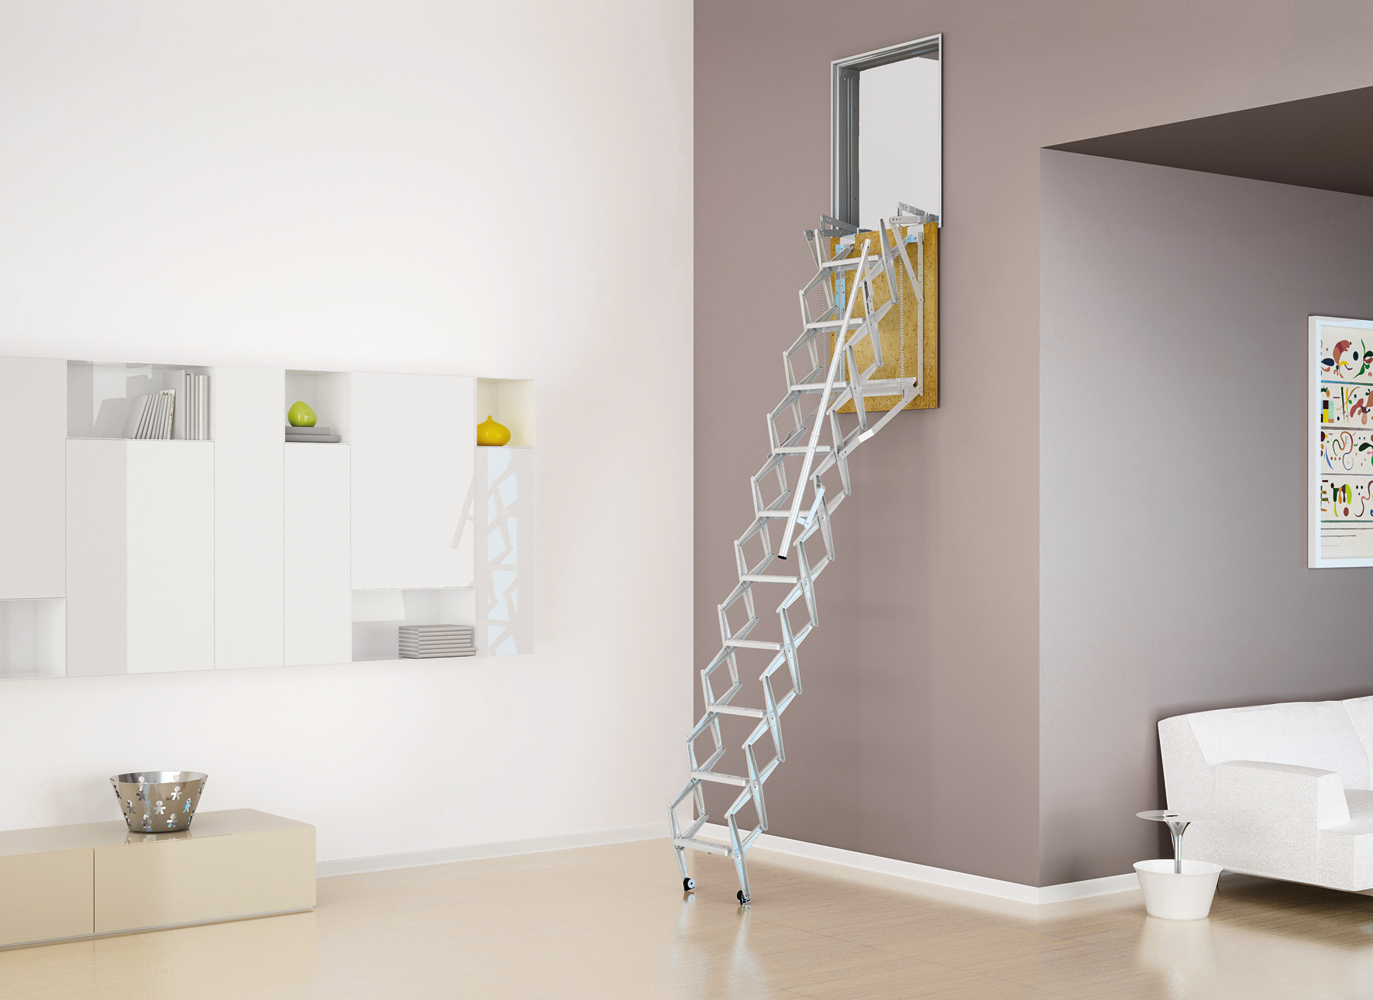 Wall Mounted Retractable Ladders Vertically Integrated Stairs